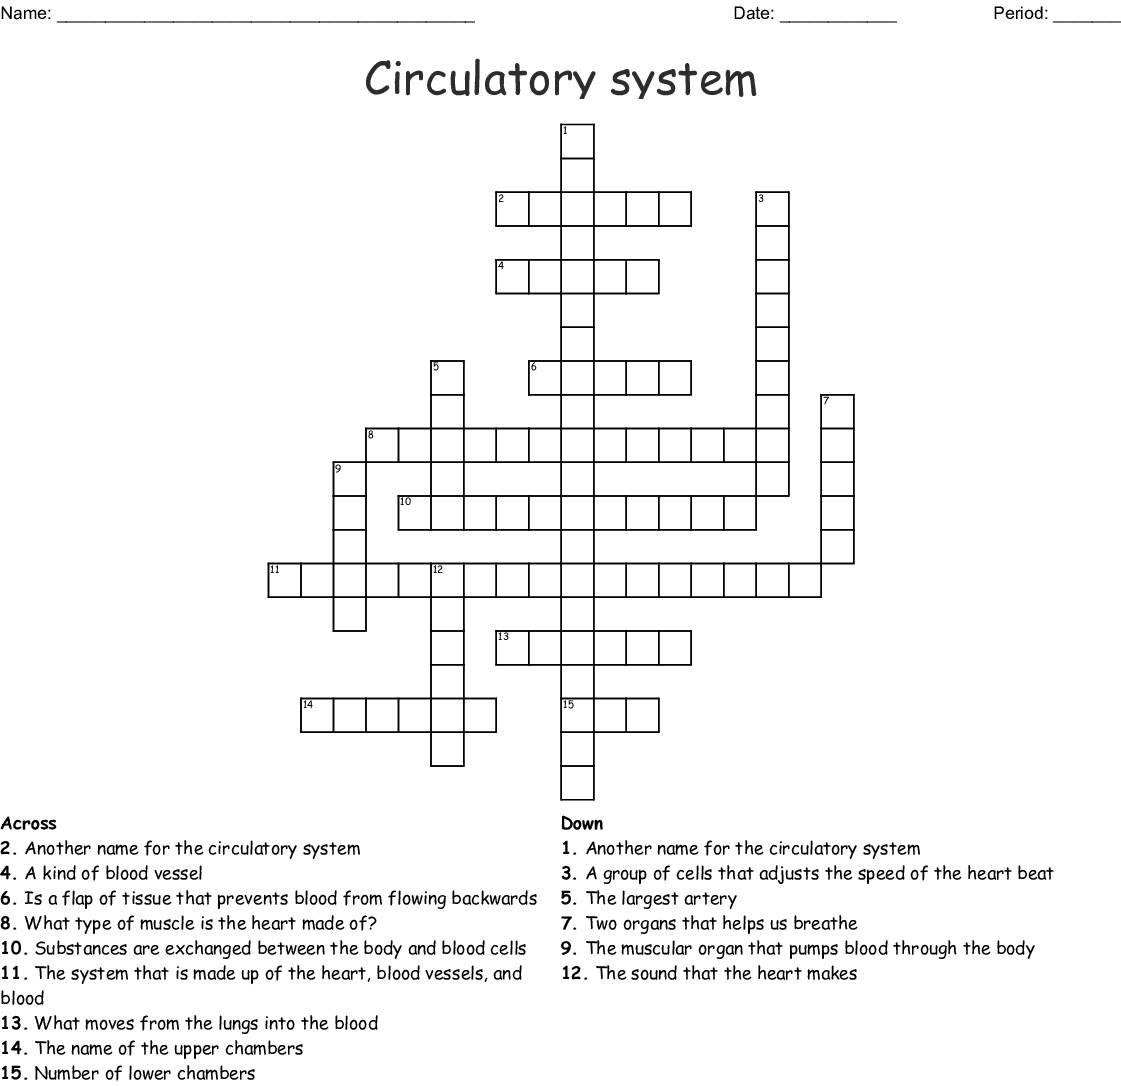 The Circulatory System Worksheet Answer Key